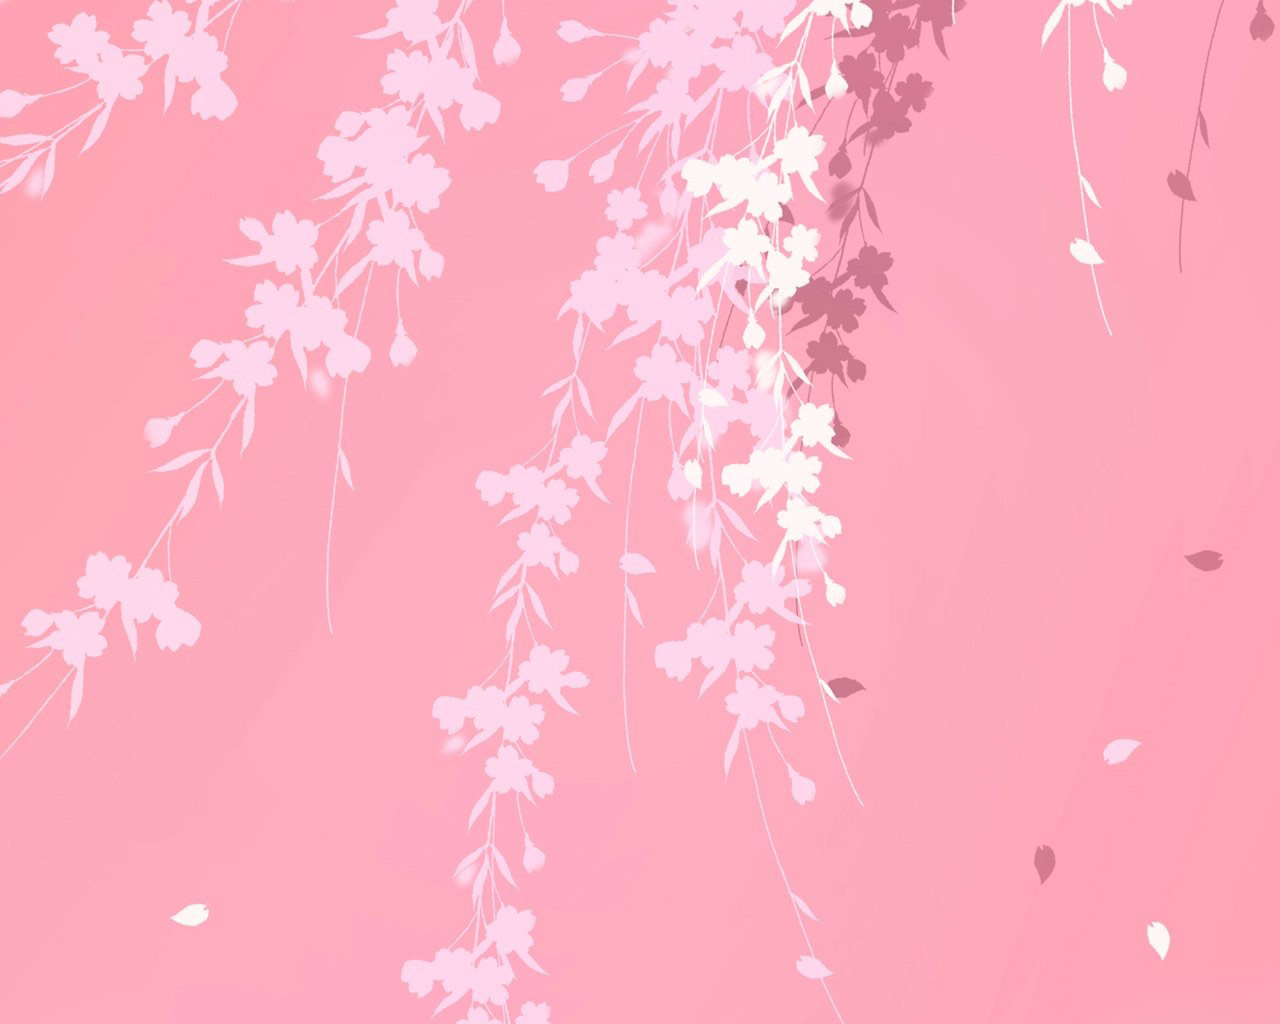 Pink background branches windows 7 hd Wallpaper High 1280x1024